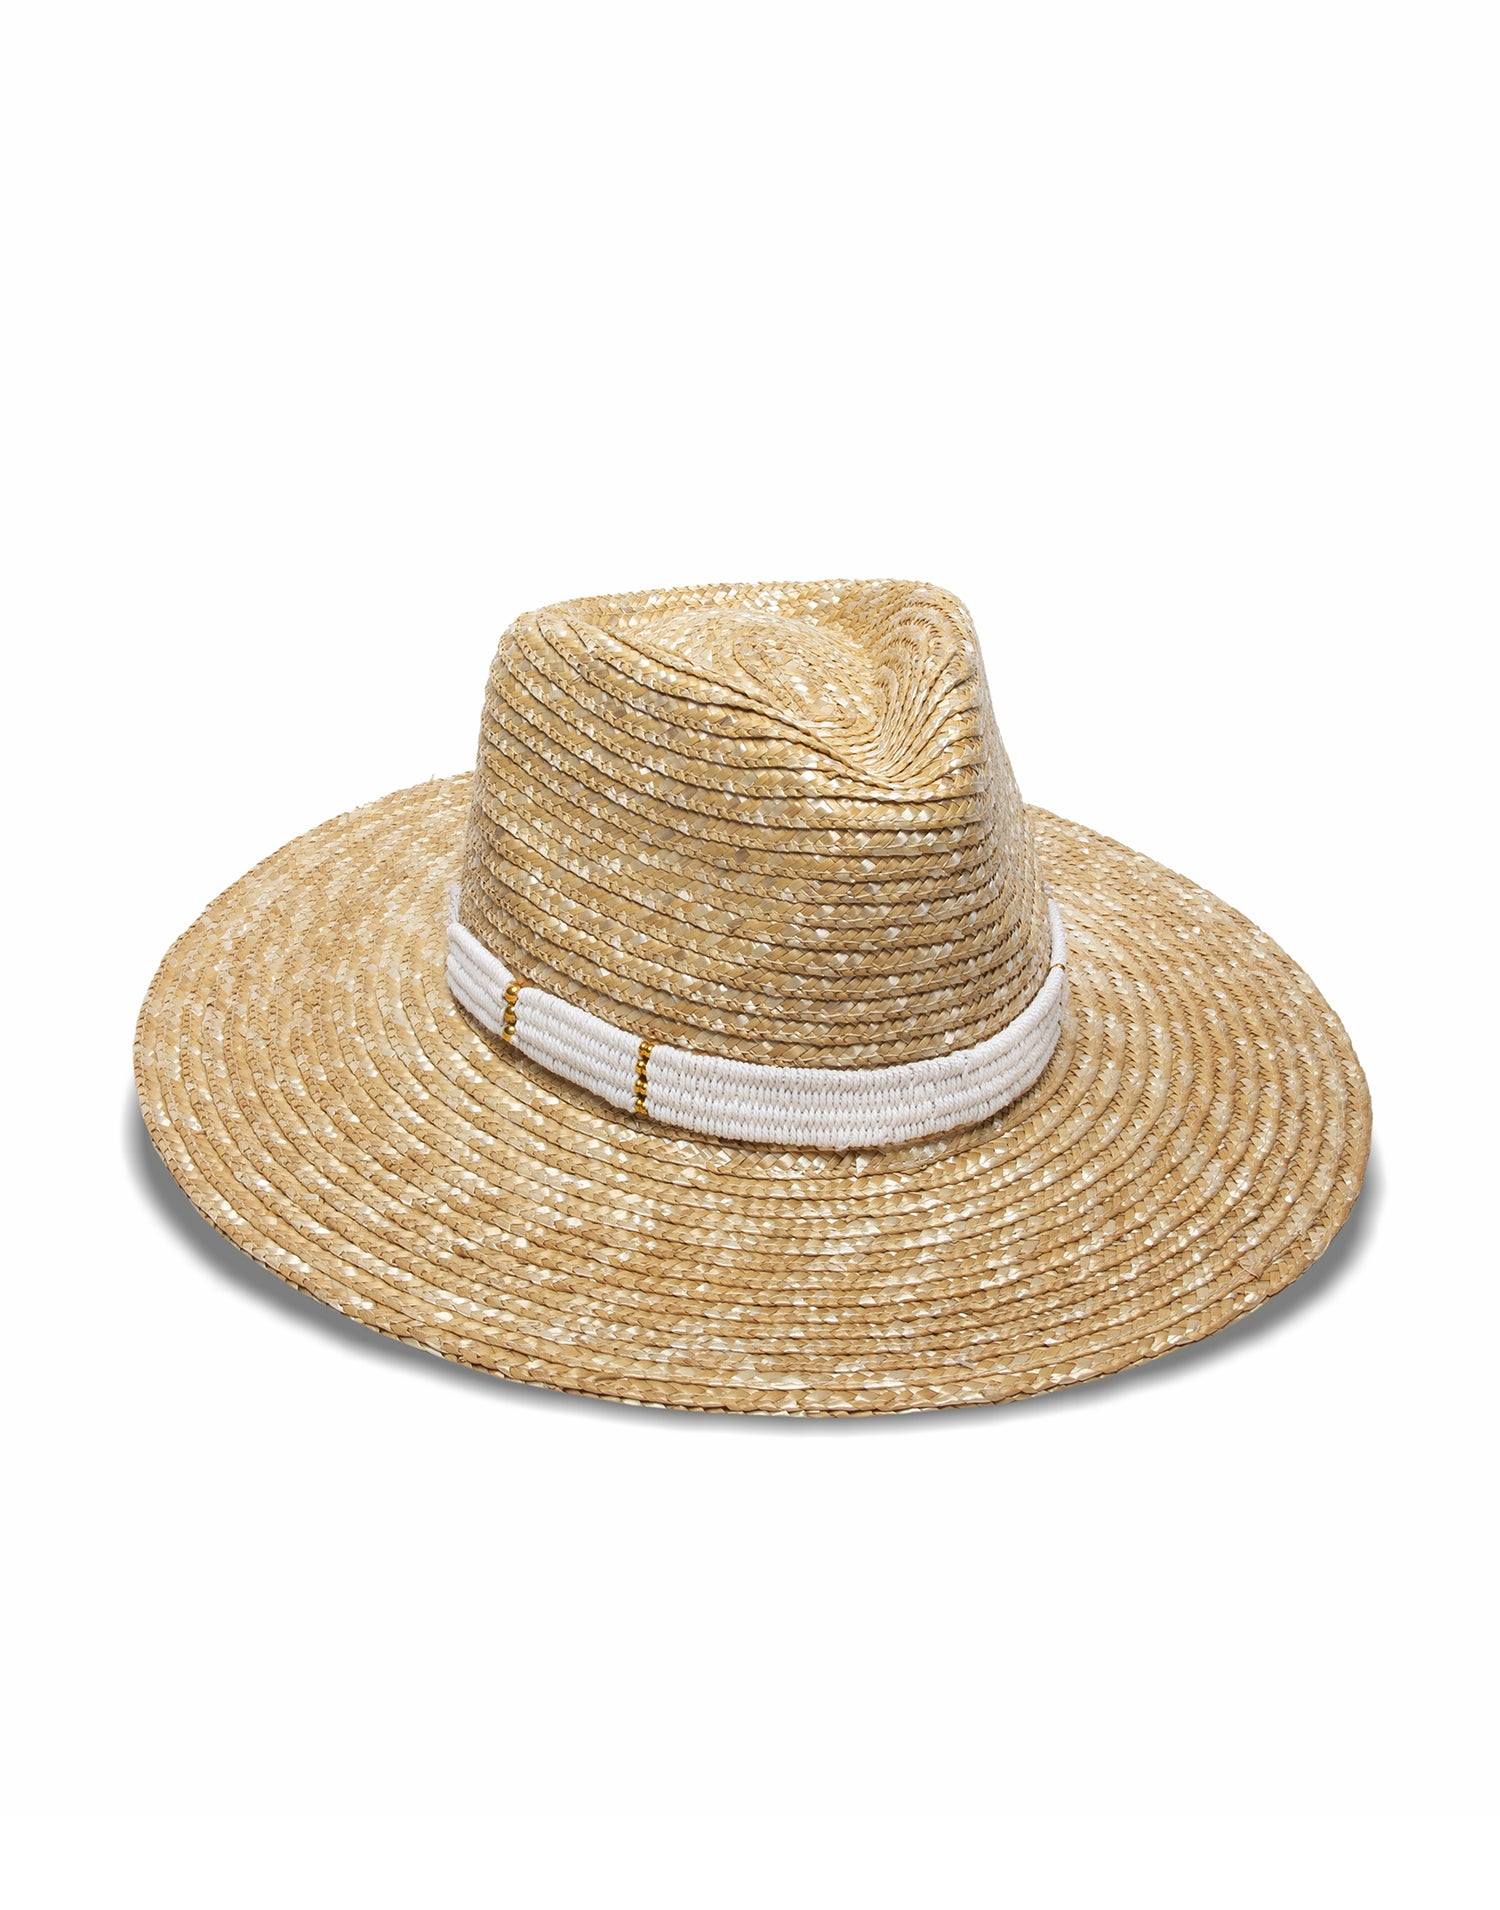 Nikki Beach's Alessia Sun Hat in Natural/White - Product View